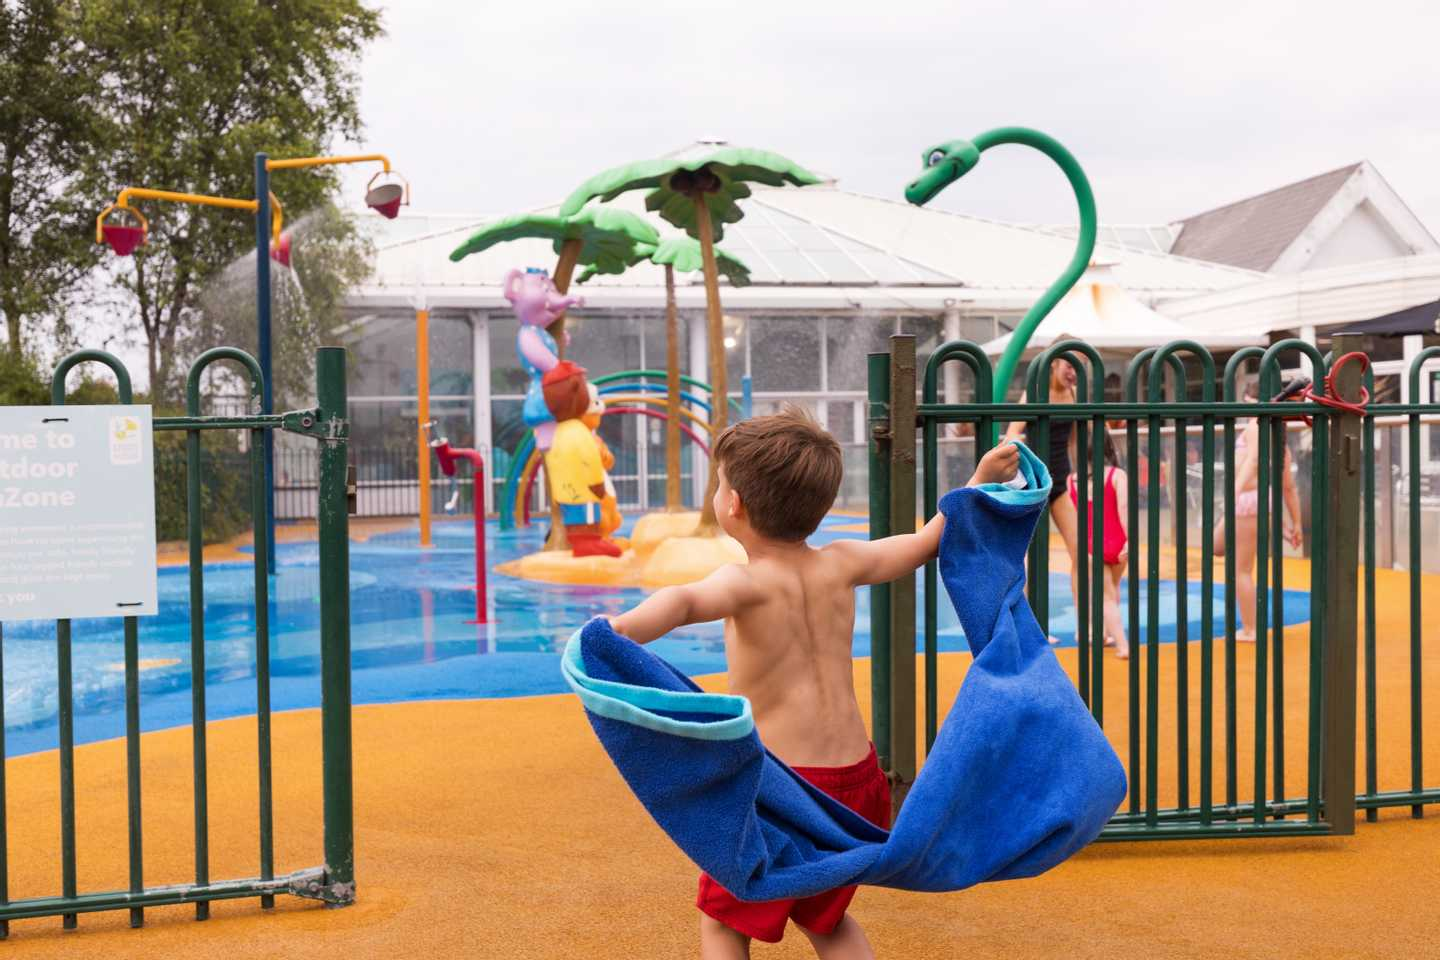 Children playing in the SplashZone